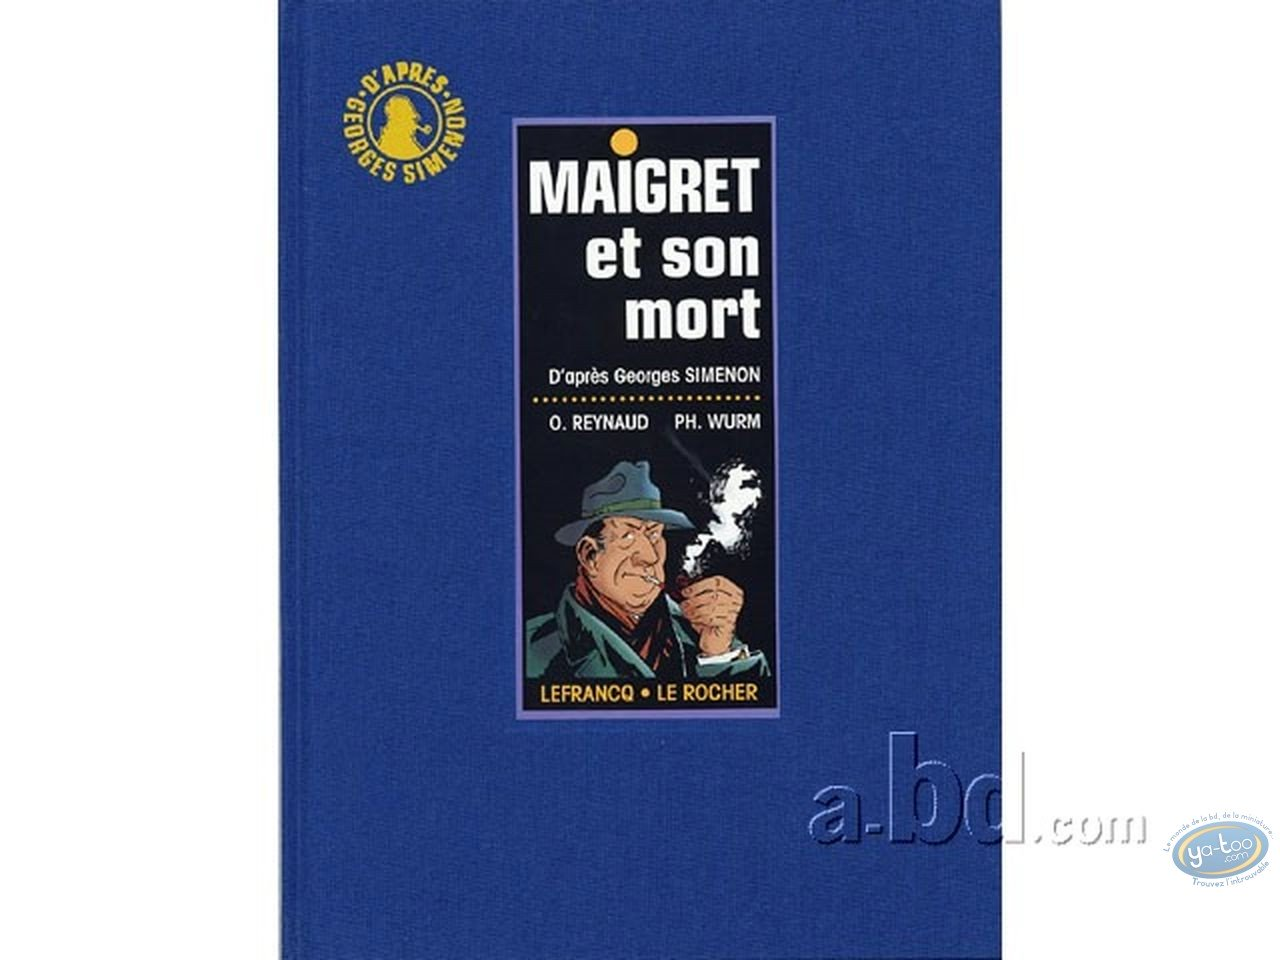 Limited First Edition, Maigret : Maigret et son mort